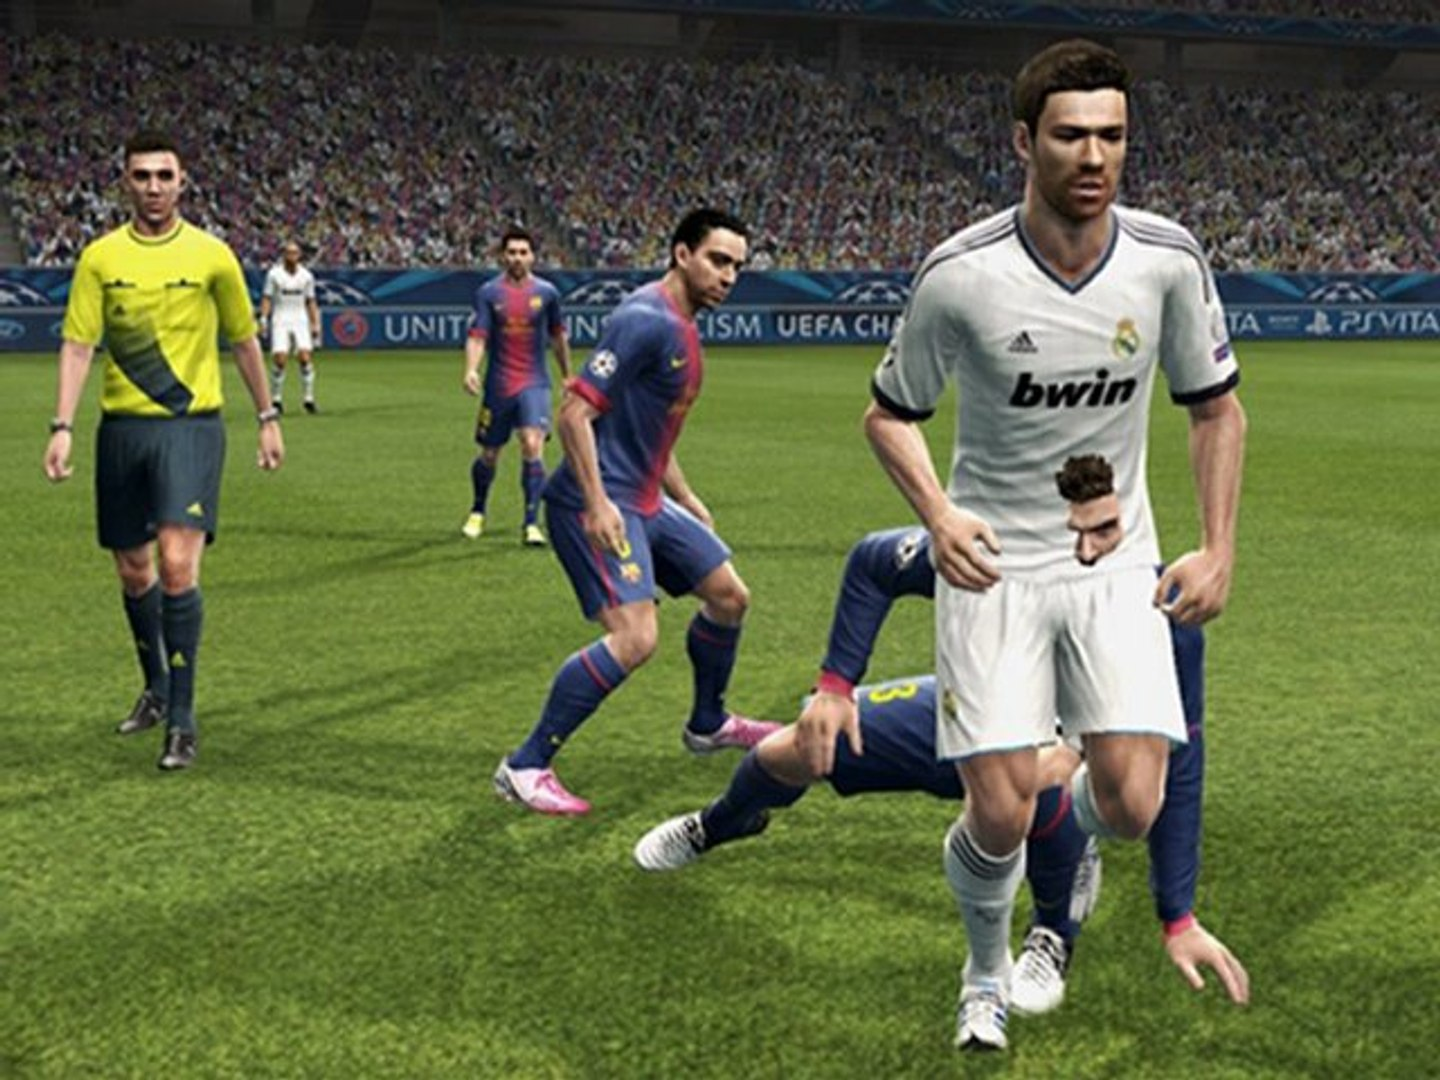 Pro Evolution Soccer 2013 (PES) 2013 PS2 Game ISO Download Link